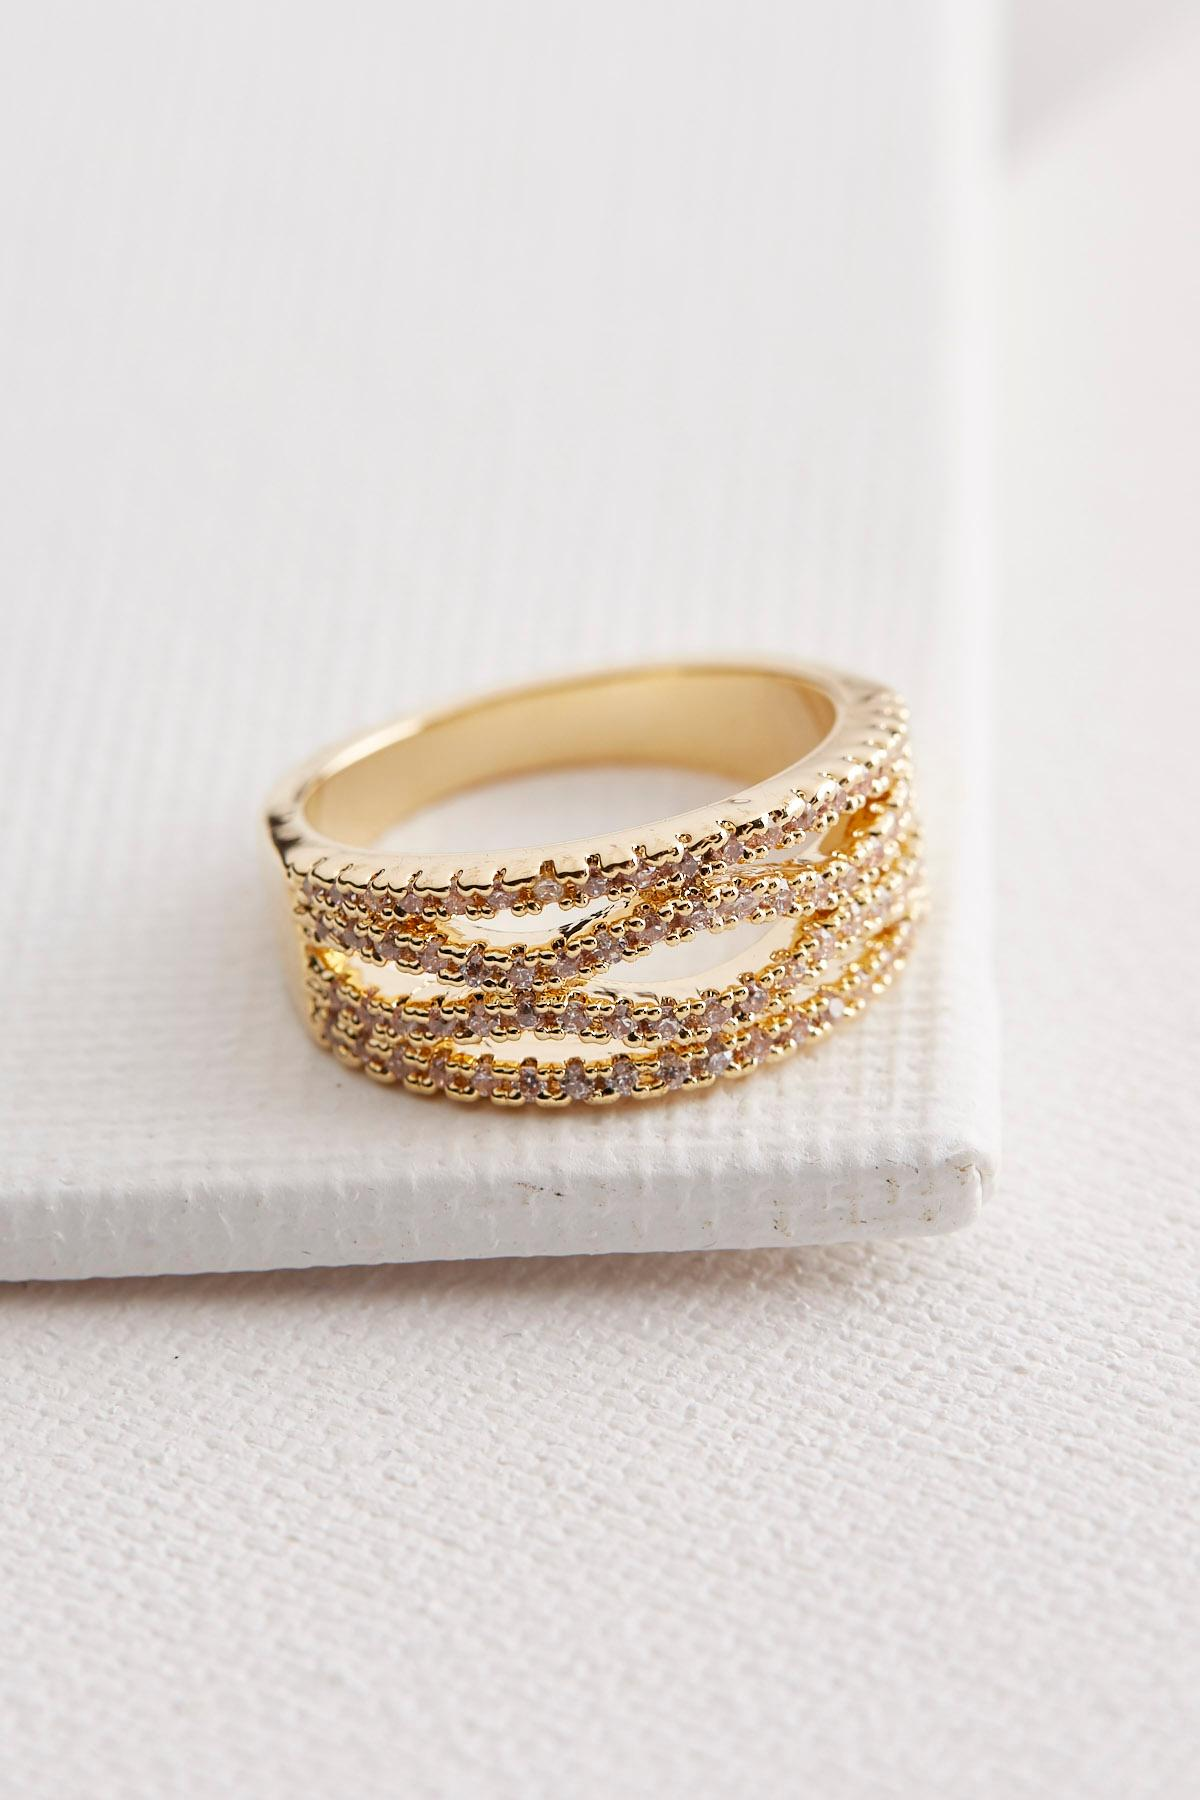 Brass Pave Filigree Ring